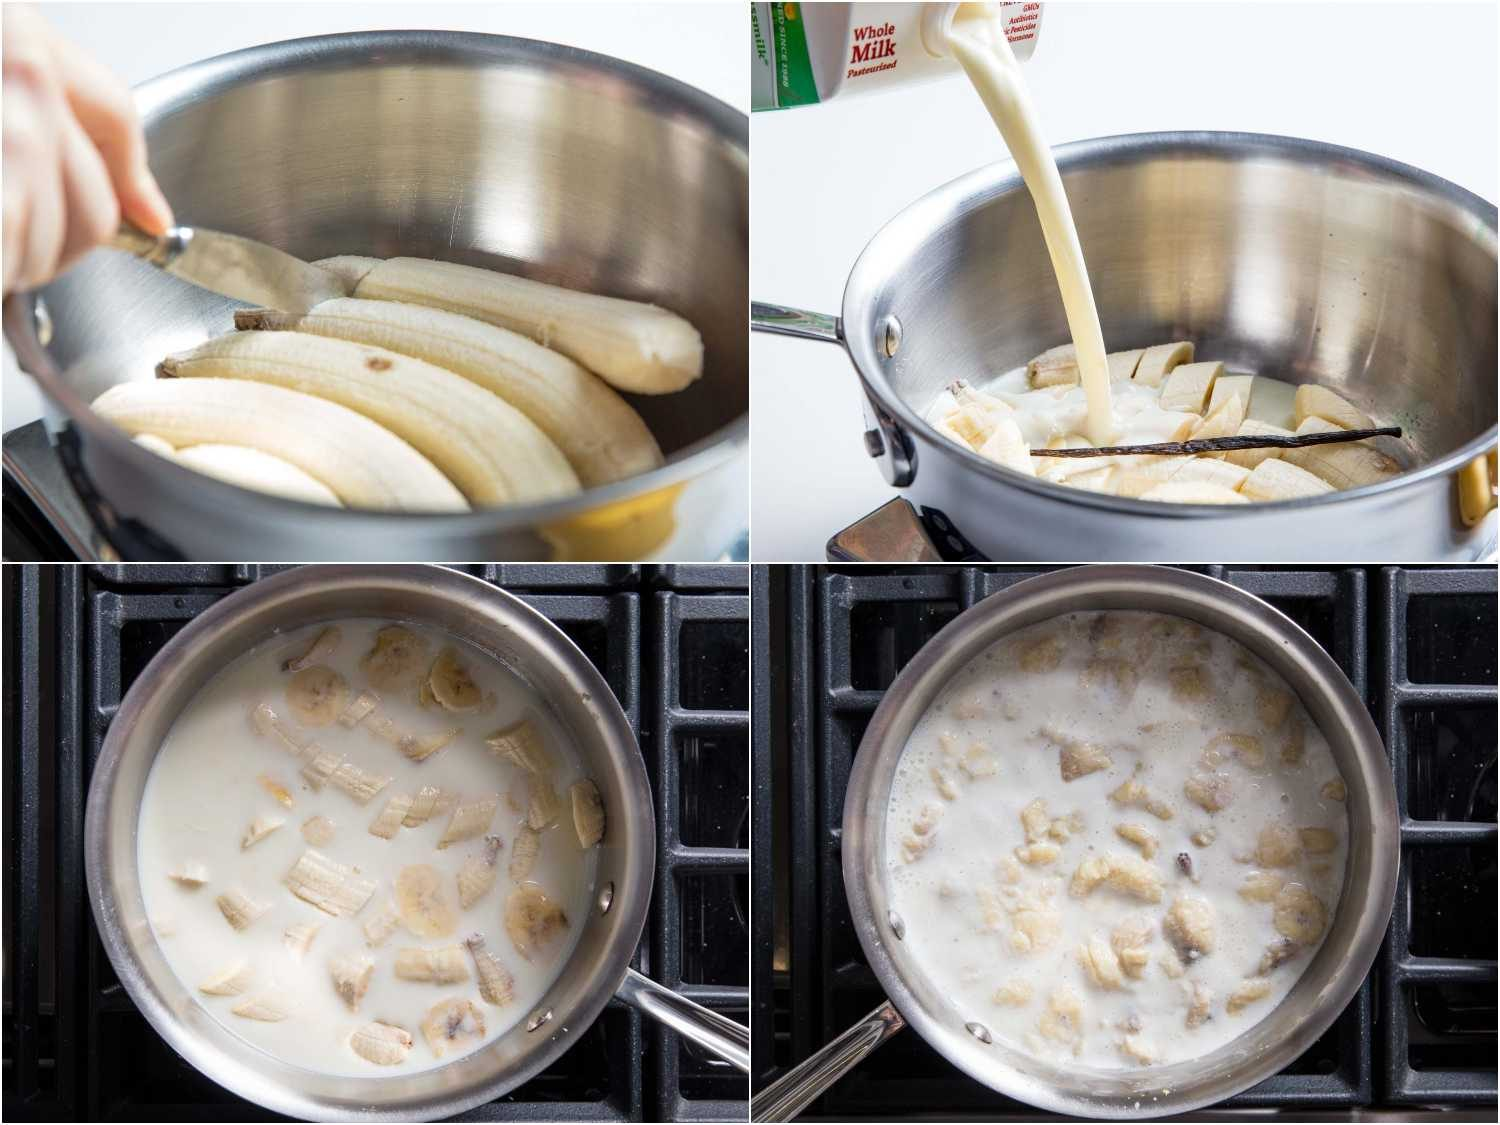 sliced bananas steeped with milk